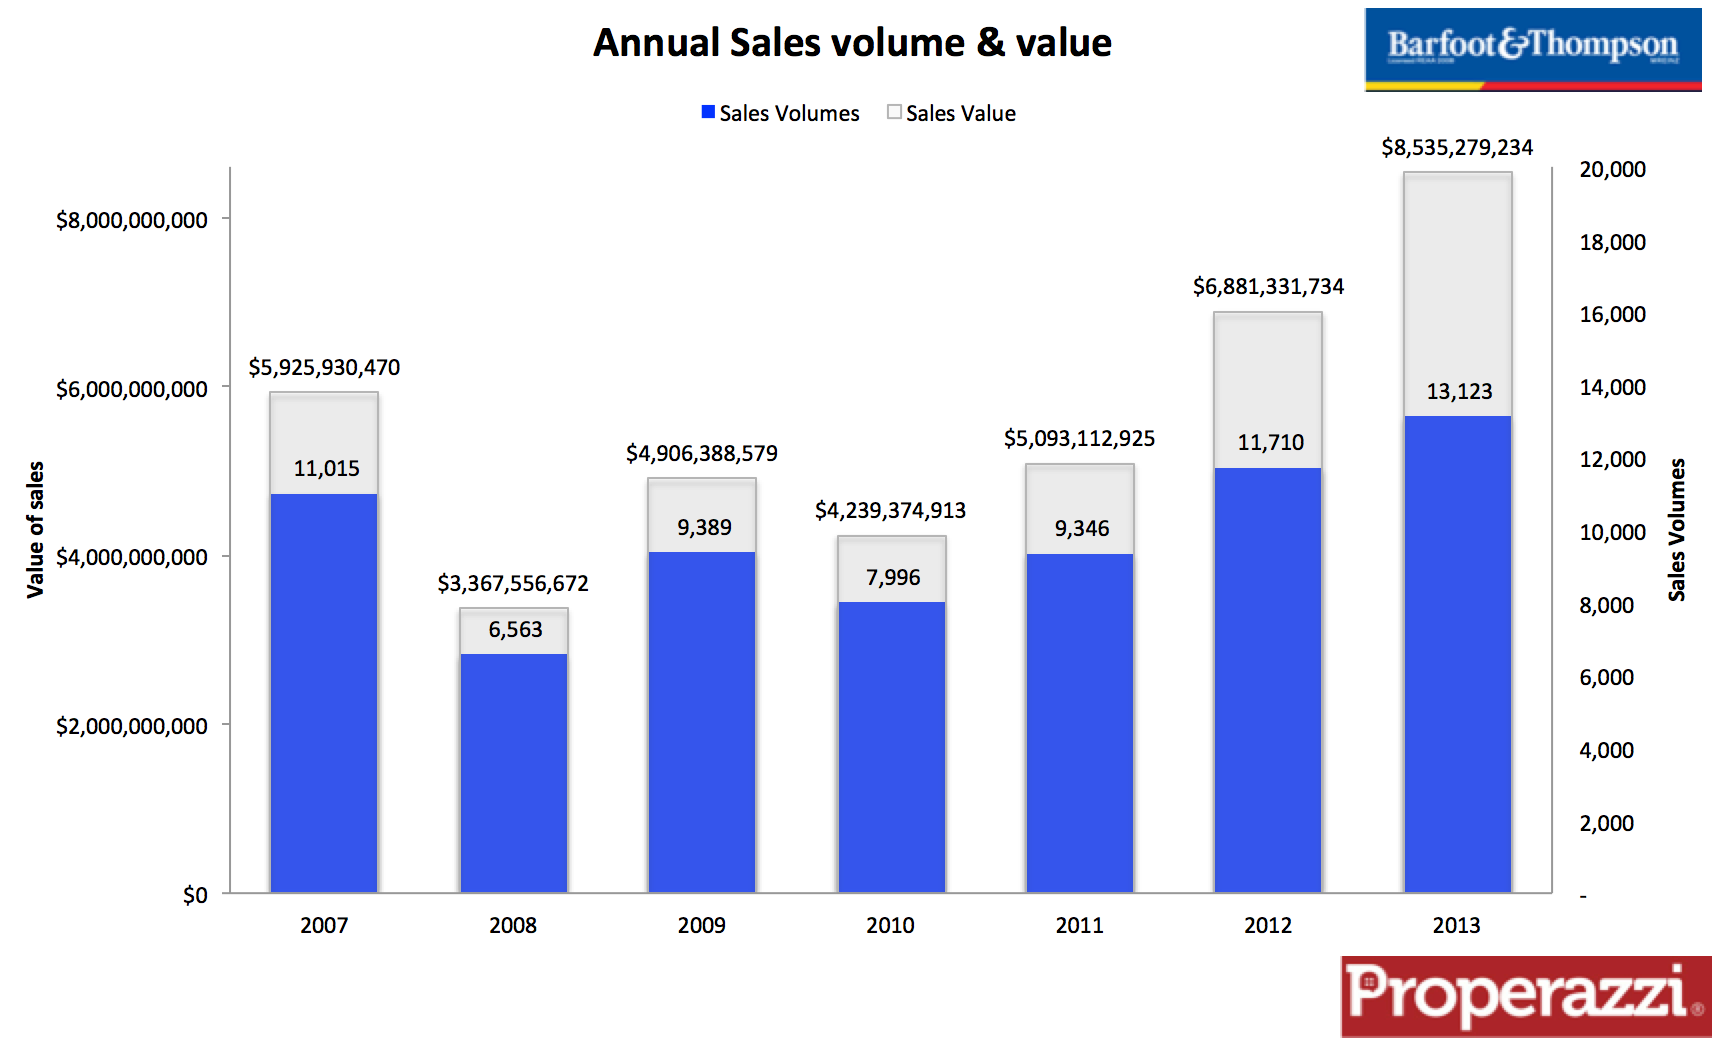 Barfoot & Thompson annual sales and value 2013.png